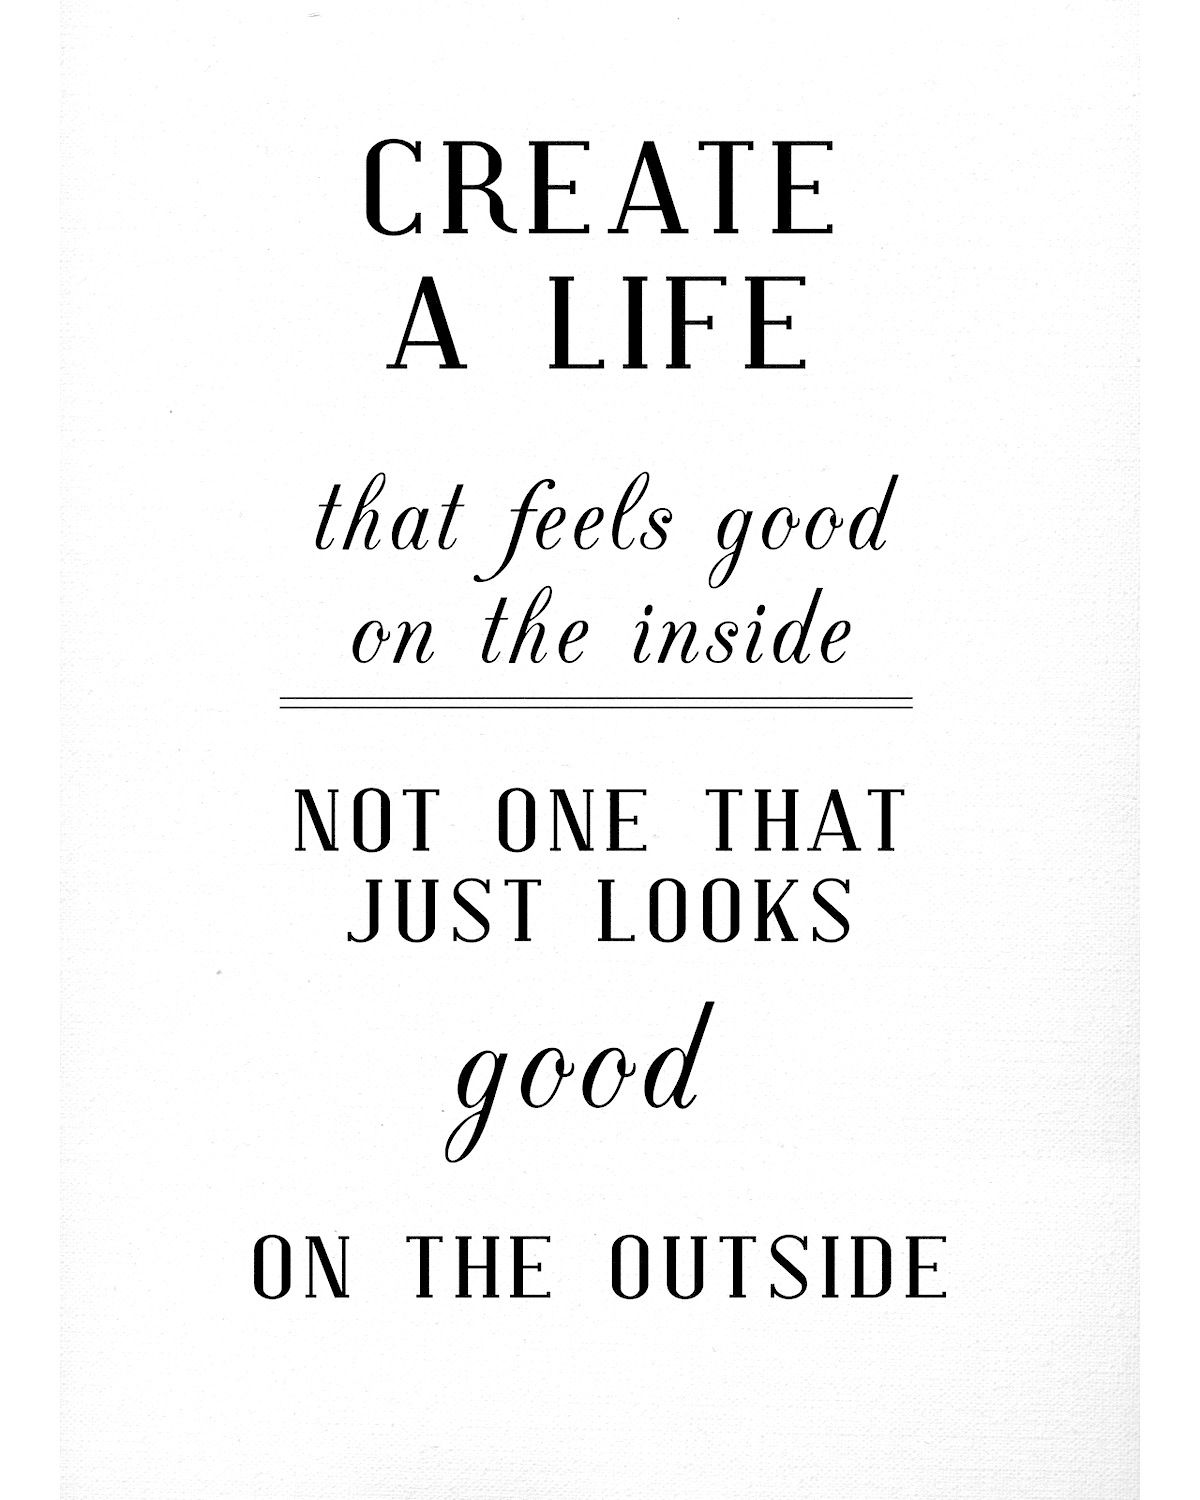 Quotable Quotes About Life Create A Life That Feels Good On The Insidenot One That Just